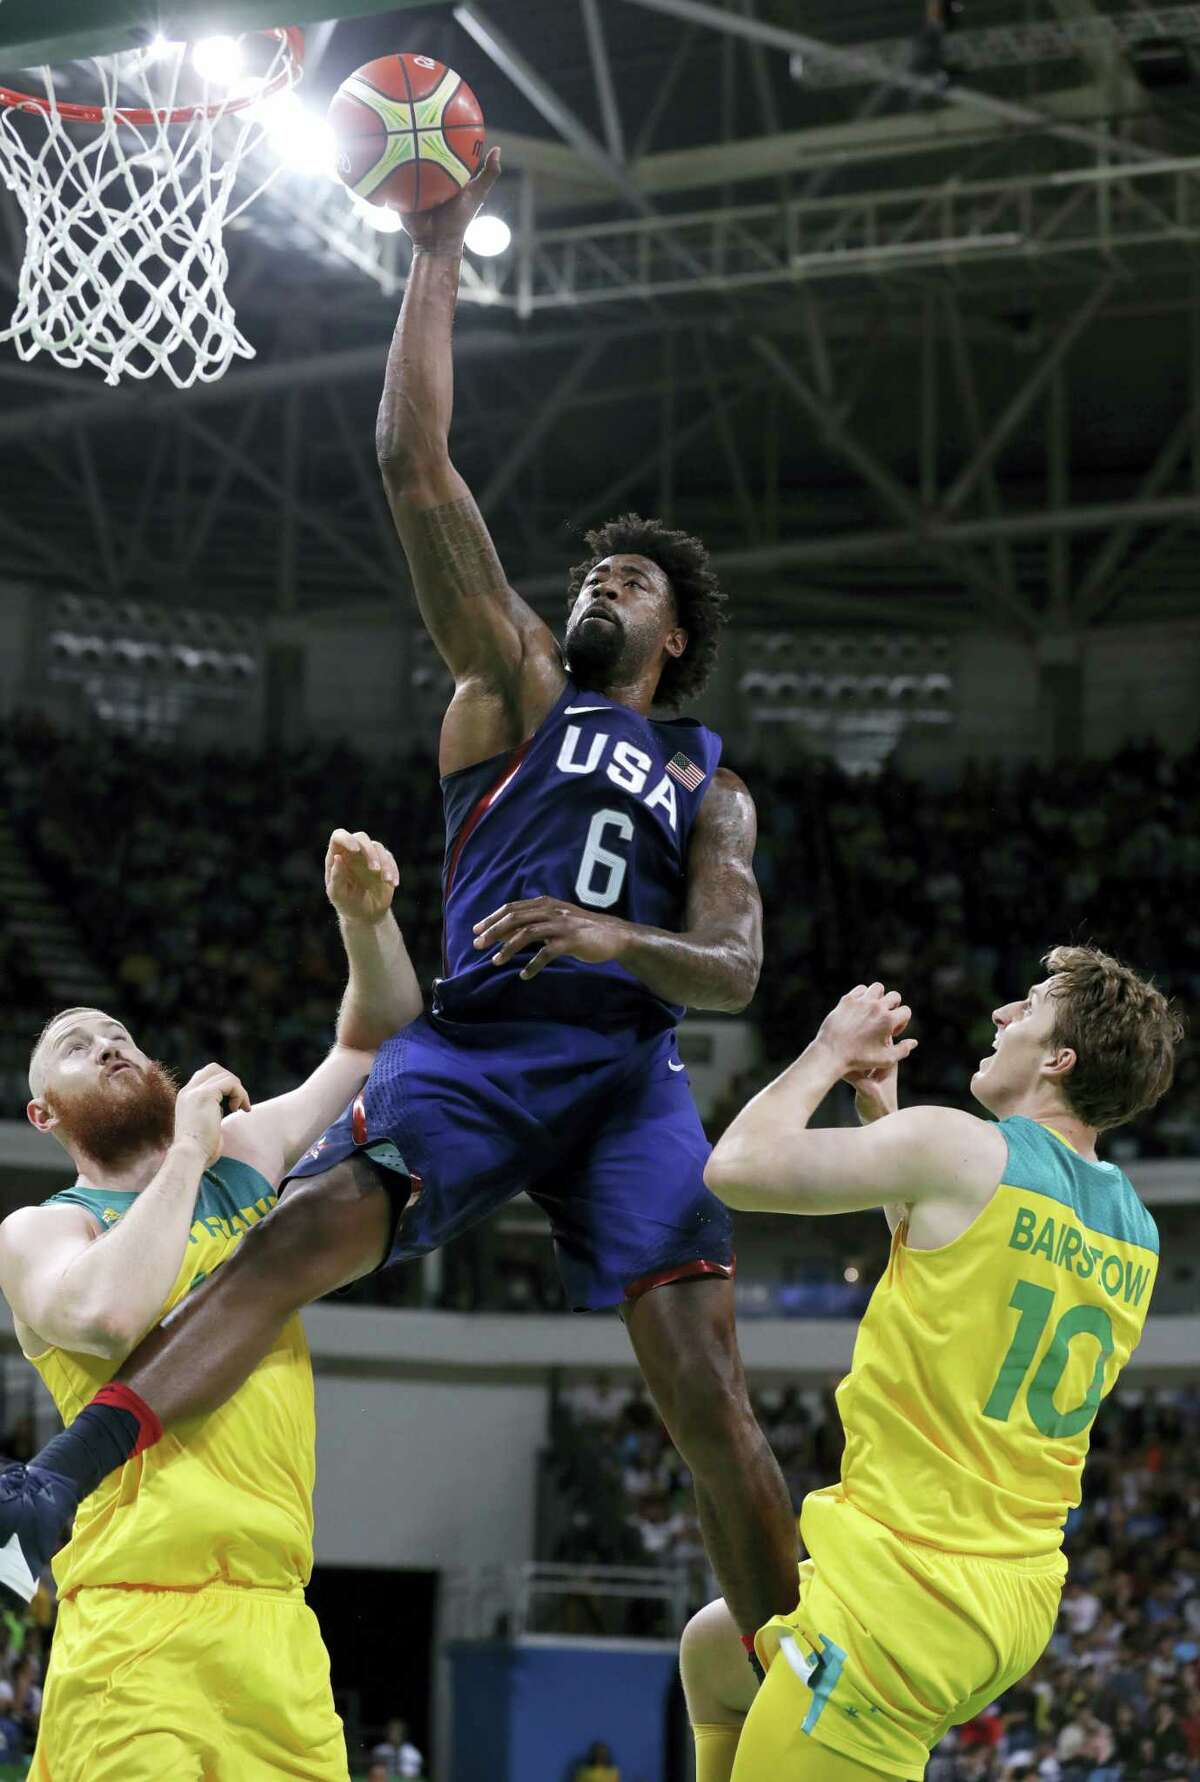 DeAndre Jordan (6) drives to the basket between Australia's Aron Baynes, left, and Cameron Bairstow during the 98-88 U.S. victory at the 2016 Summer Olympics in Rio de Janeiro, Brazil, Wednesday.